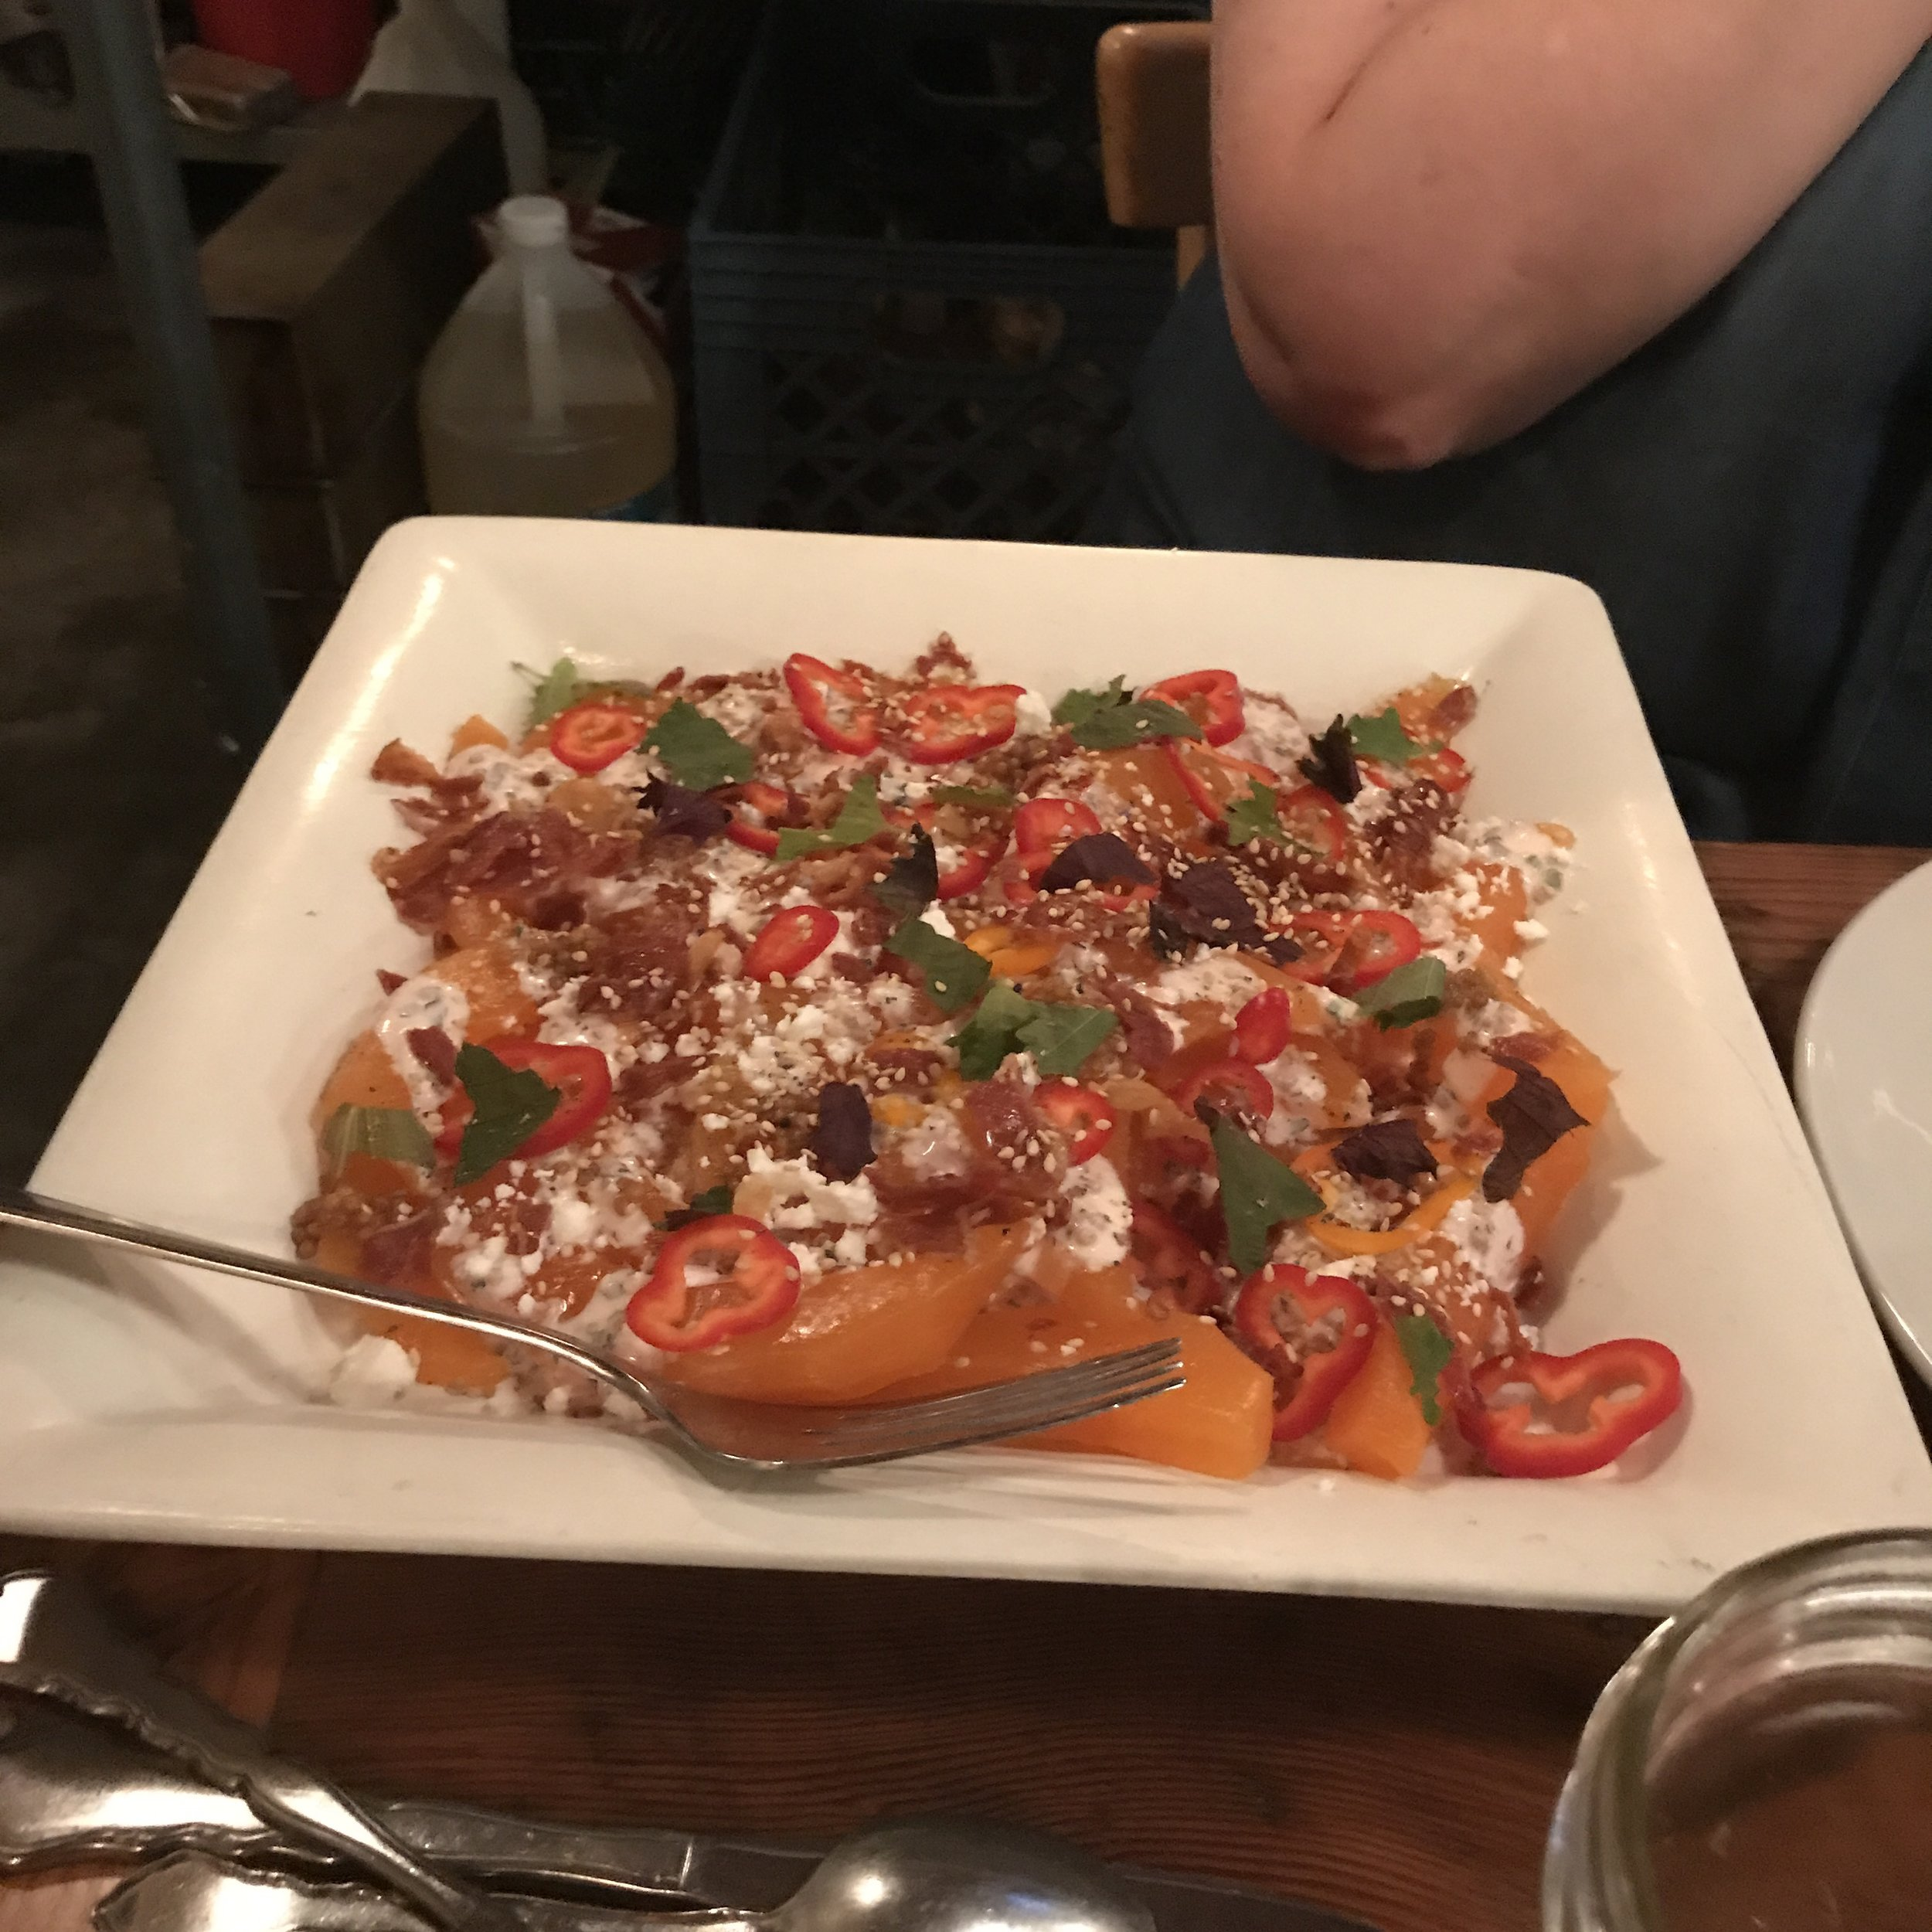 Next came a refreshing salad that featured antique cantaloupe melon, crispy bacon, thinly sliced sweet bell peppers, torn mint leaves, and a salty housemade feta